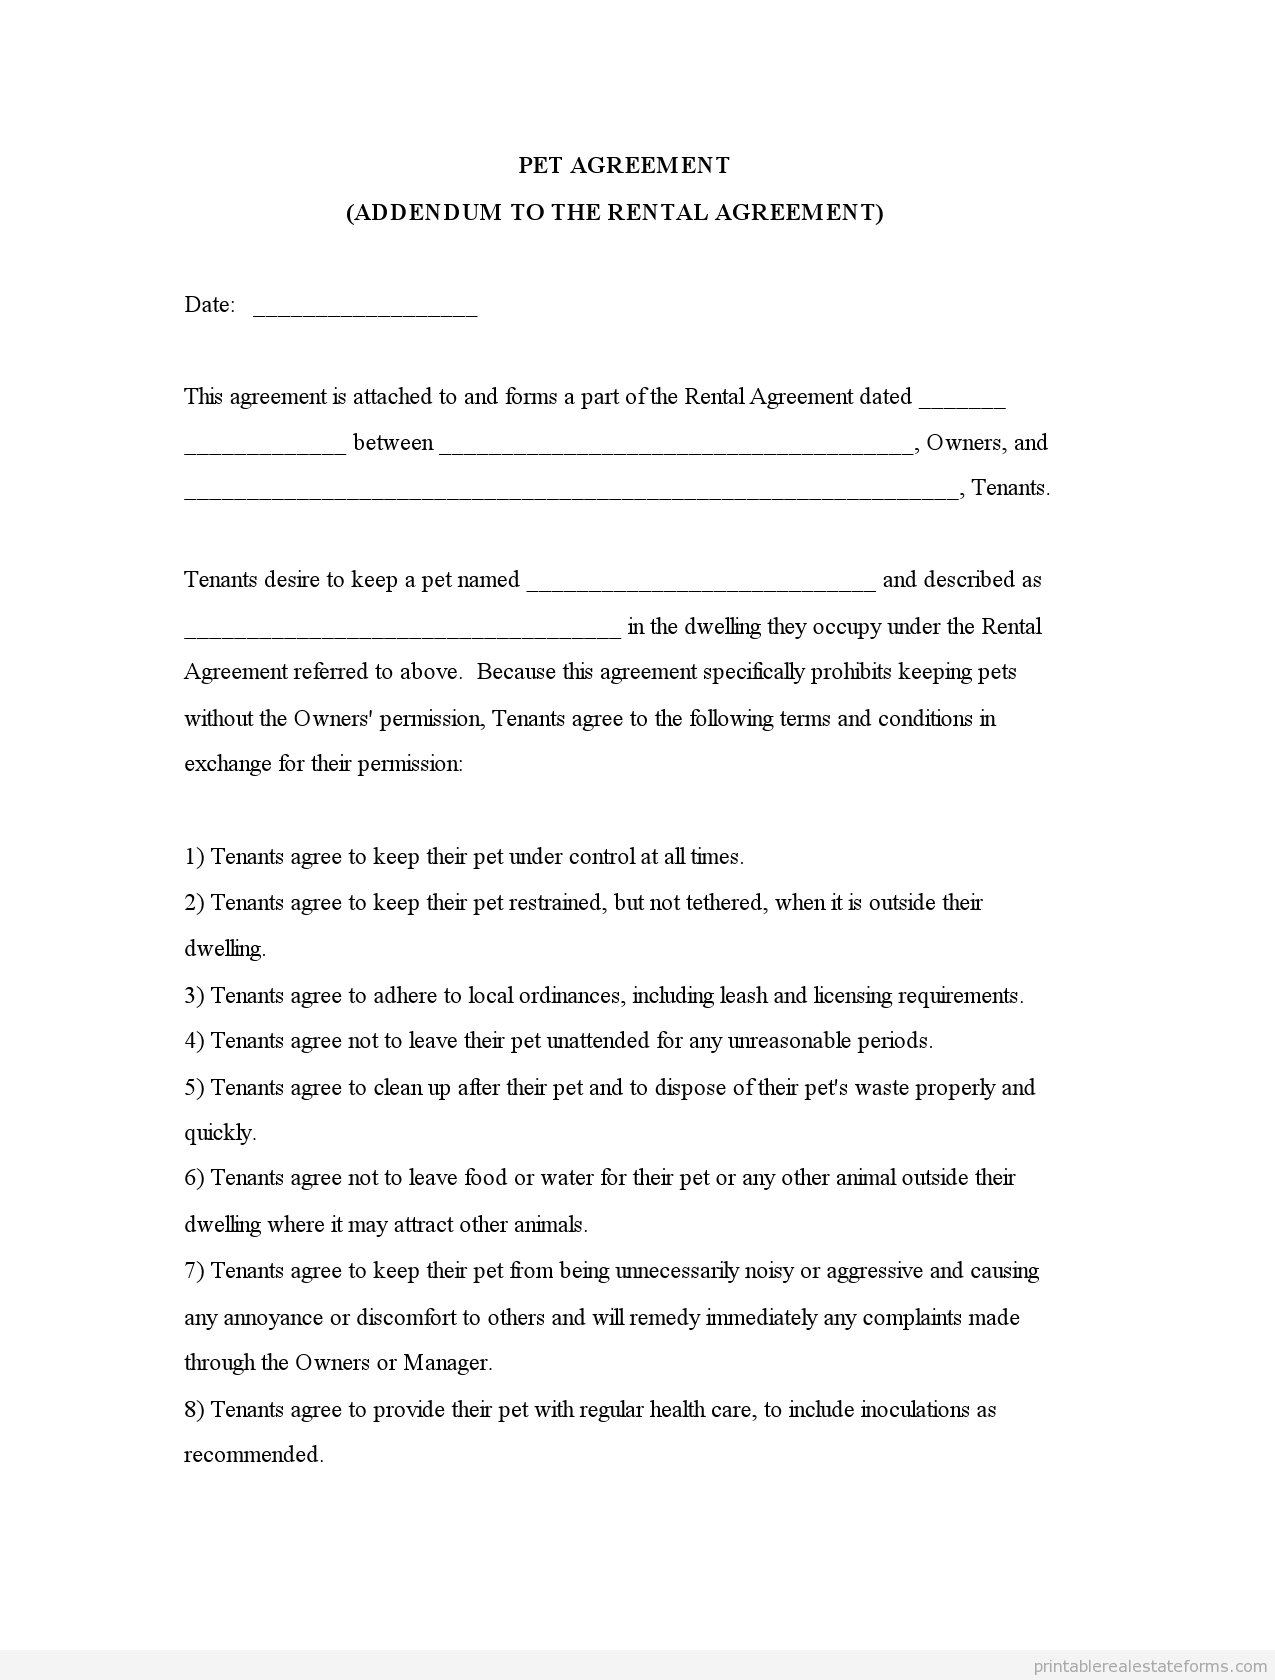 Free Printable Pet Addendum Forms -Owners Pet Agreement - Free Printable Pet Addendum